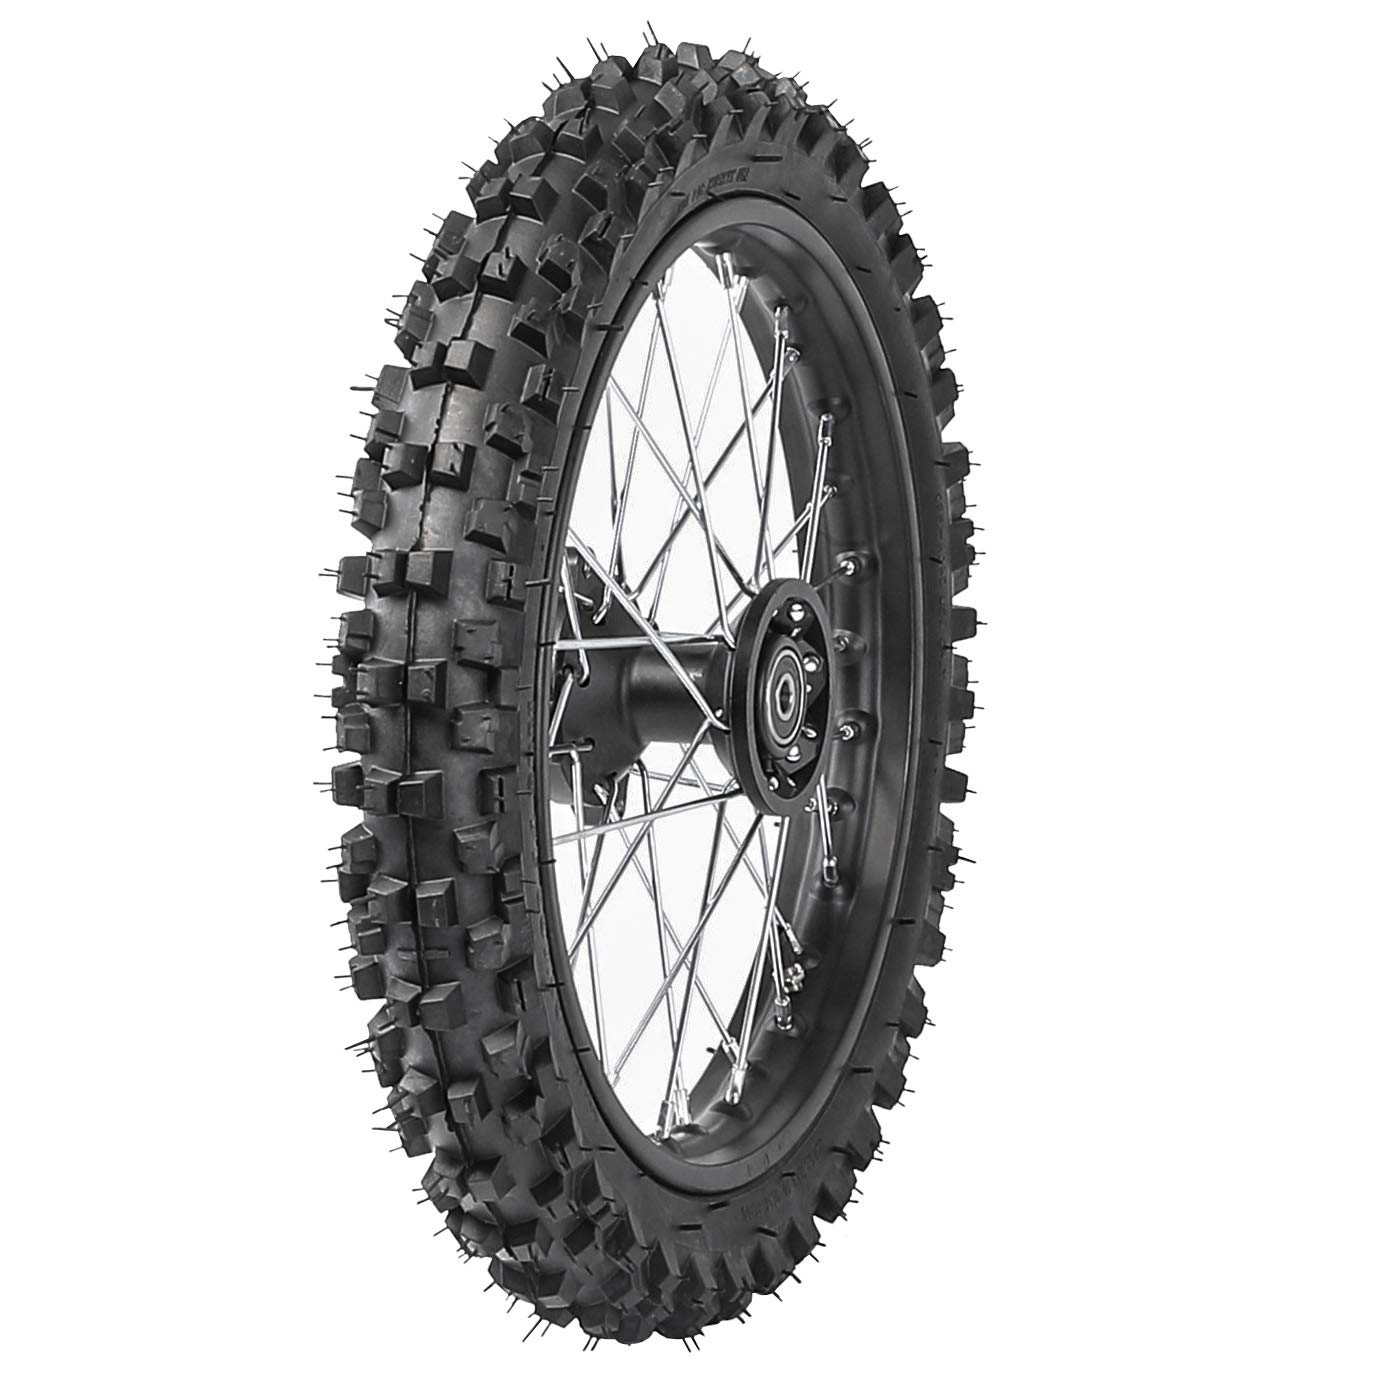 WPHMOTO Knobby Front Tire 60/100-14 Wheel Rim with 15mm Bearing for Dirt Pit Trail Bike